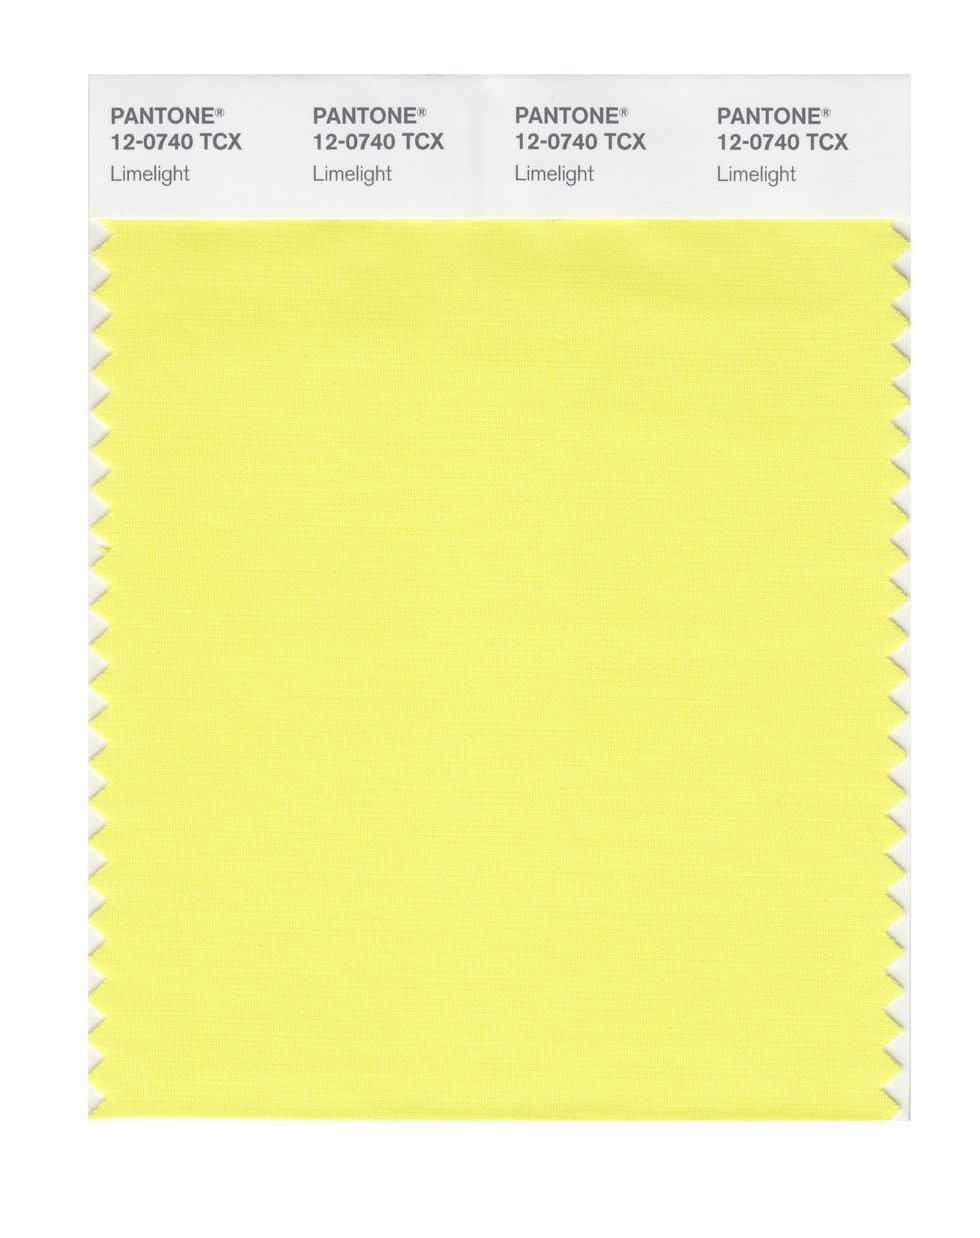 pantone-fall-18-trend-report-12-0740-limelight-1518199793.jpg